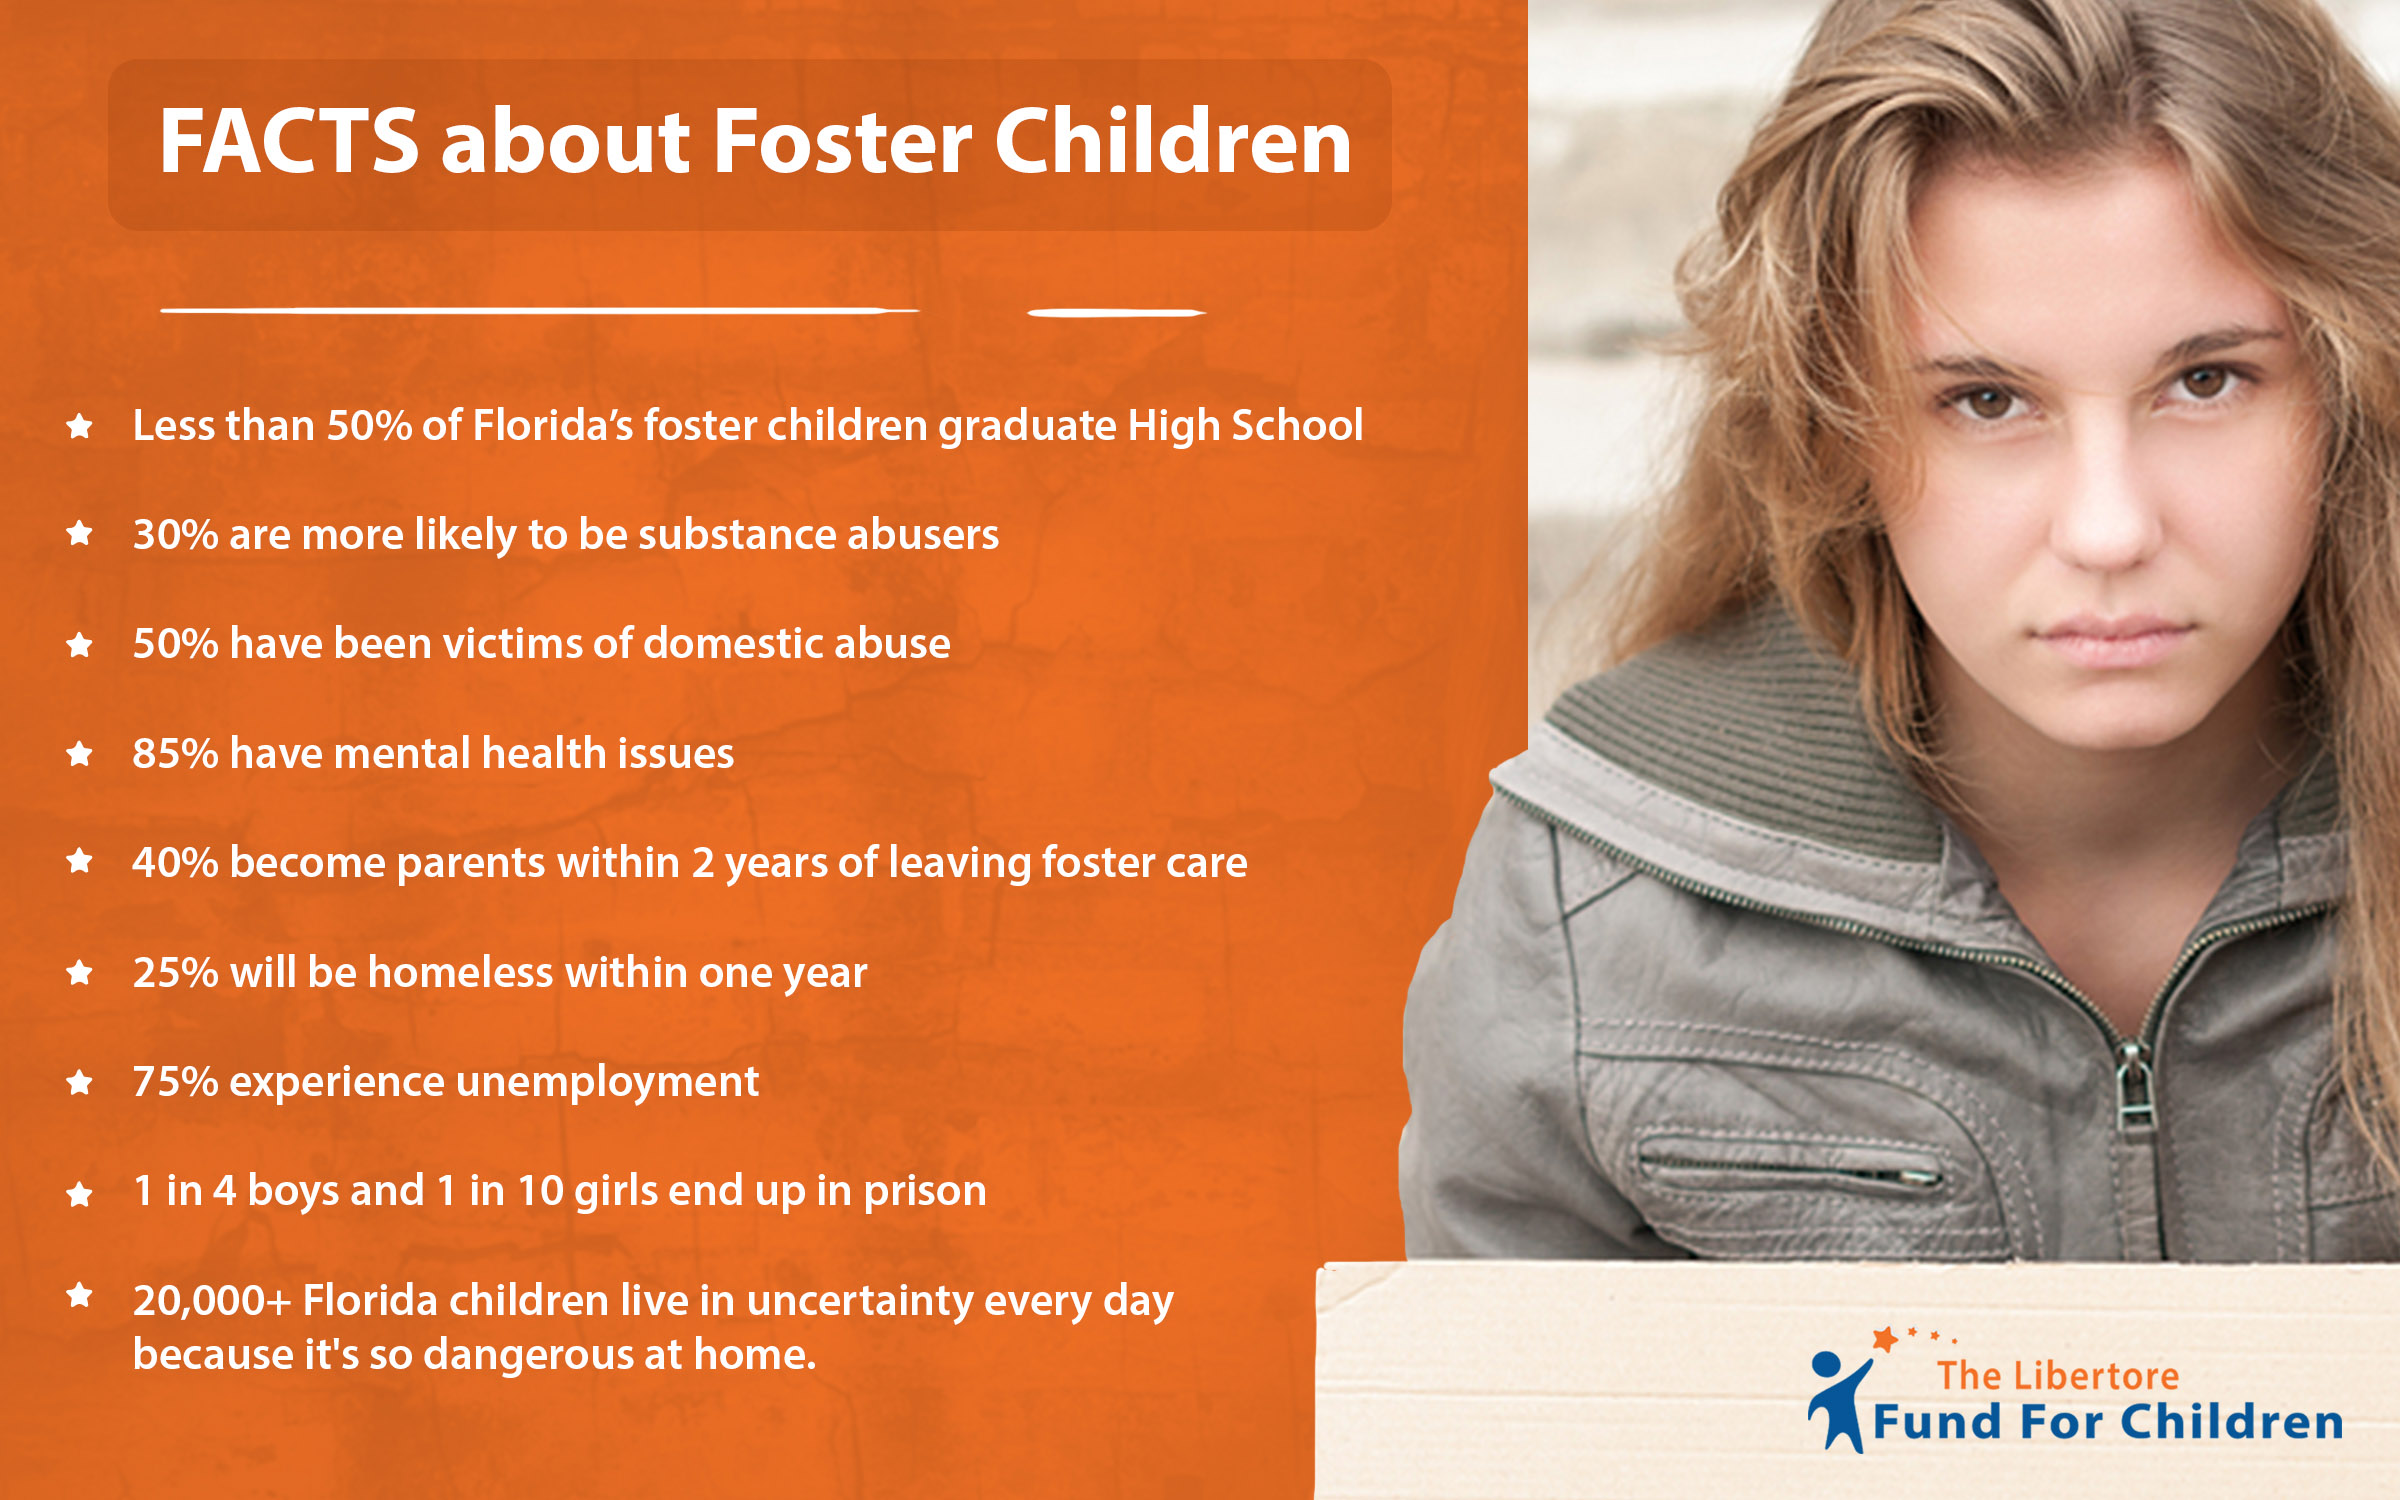 Challenge Foster Care Foster Care Challenge The Foster Care Crisis The Shortage Of Foster